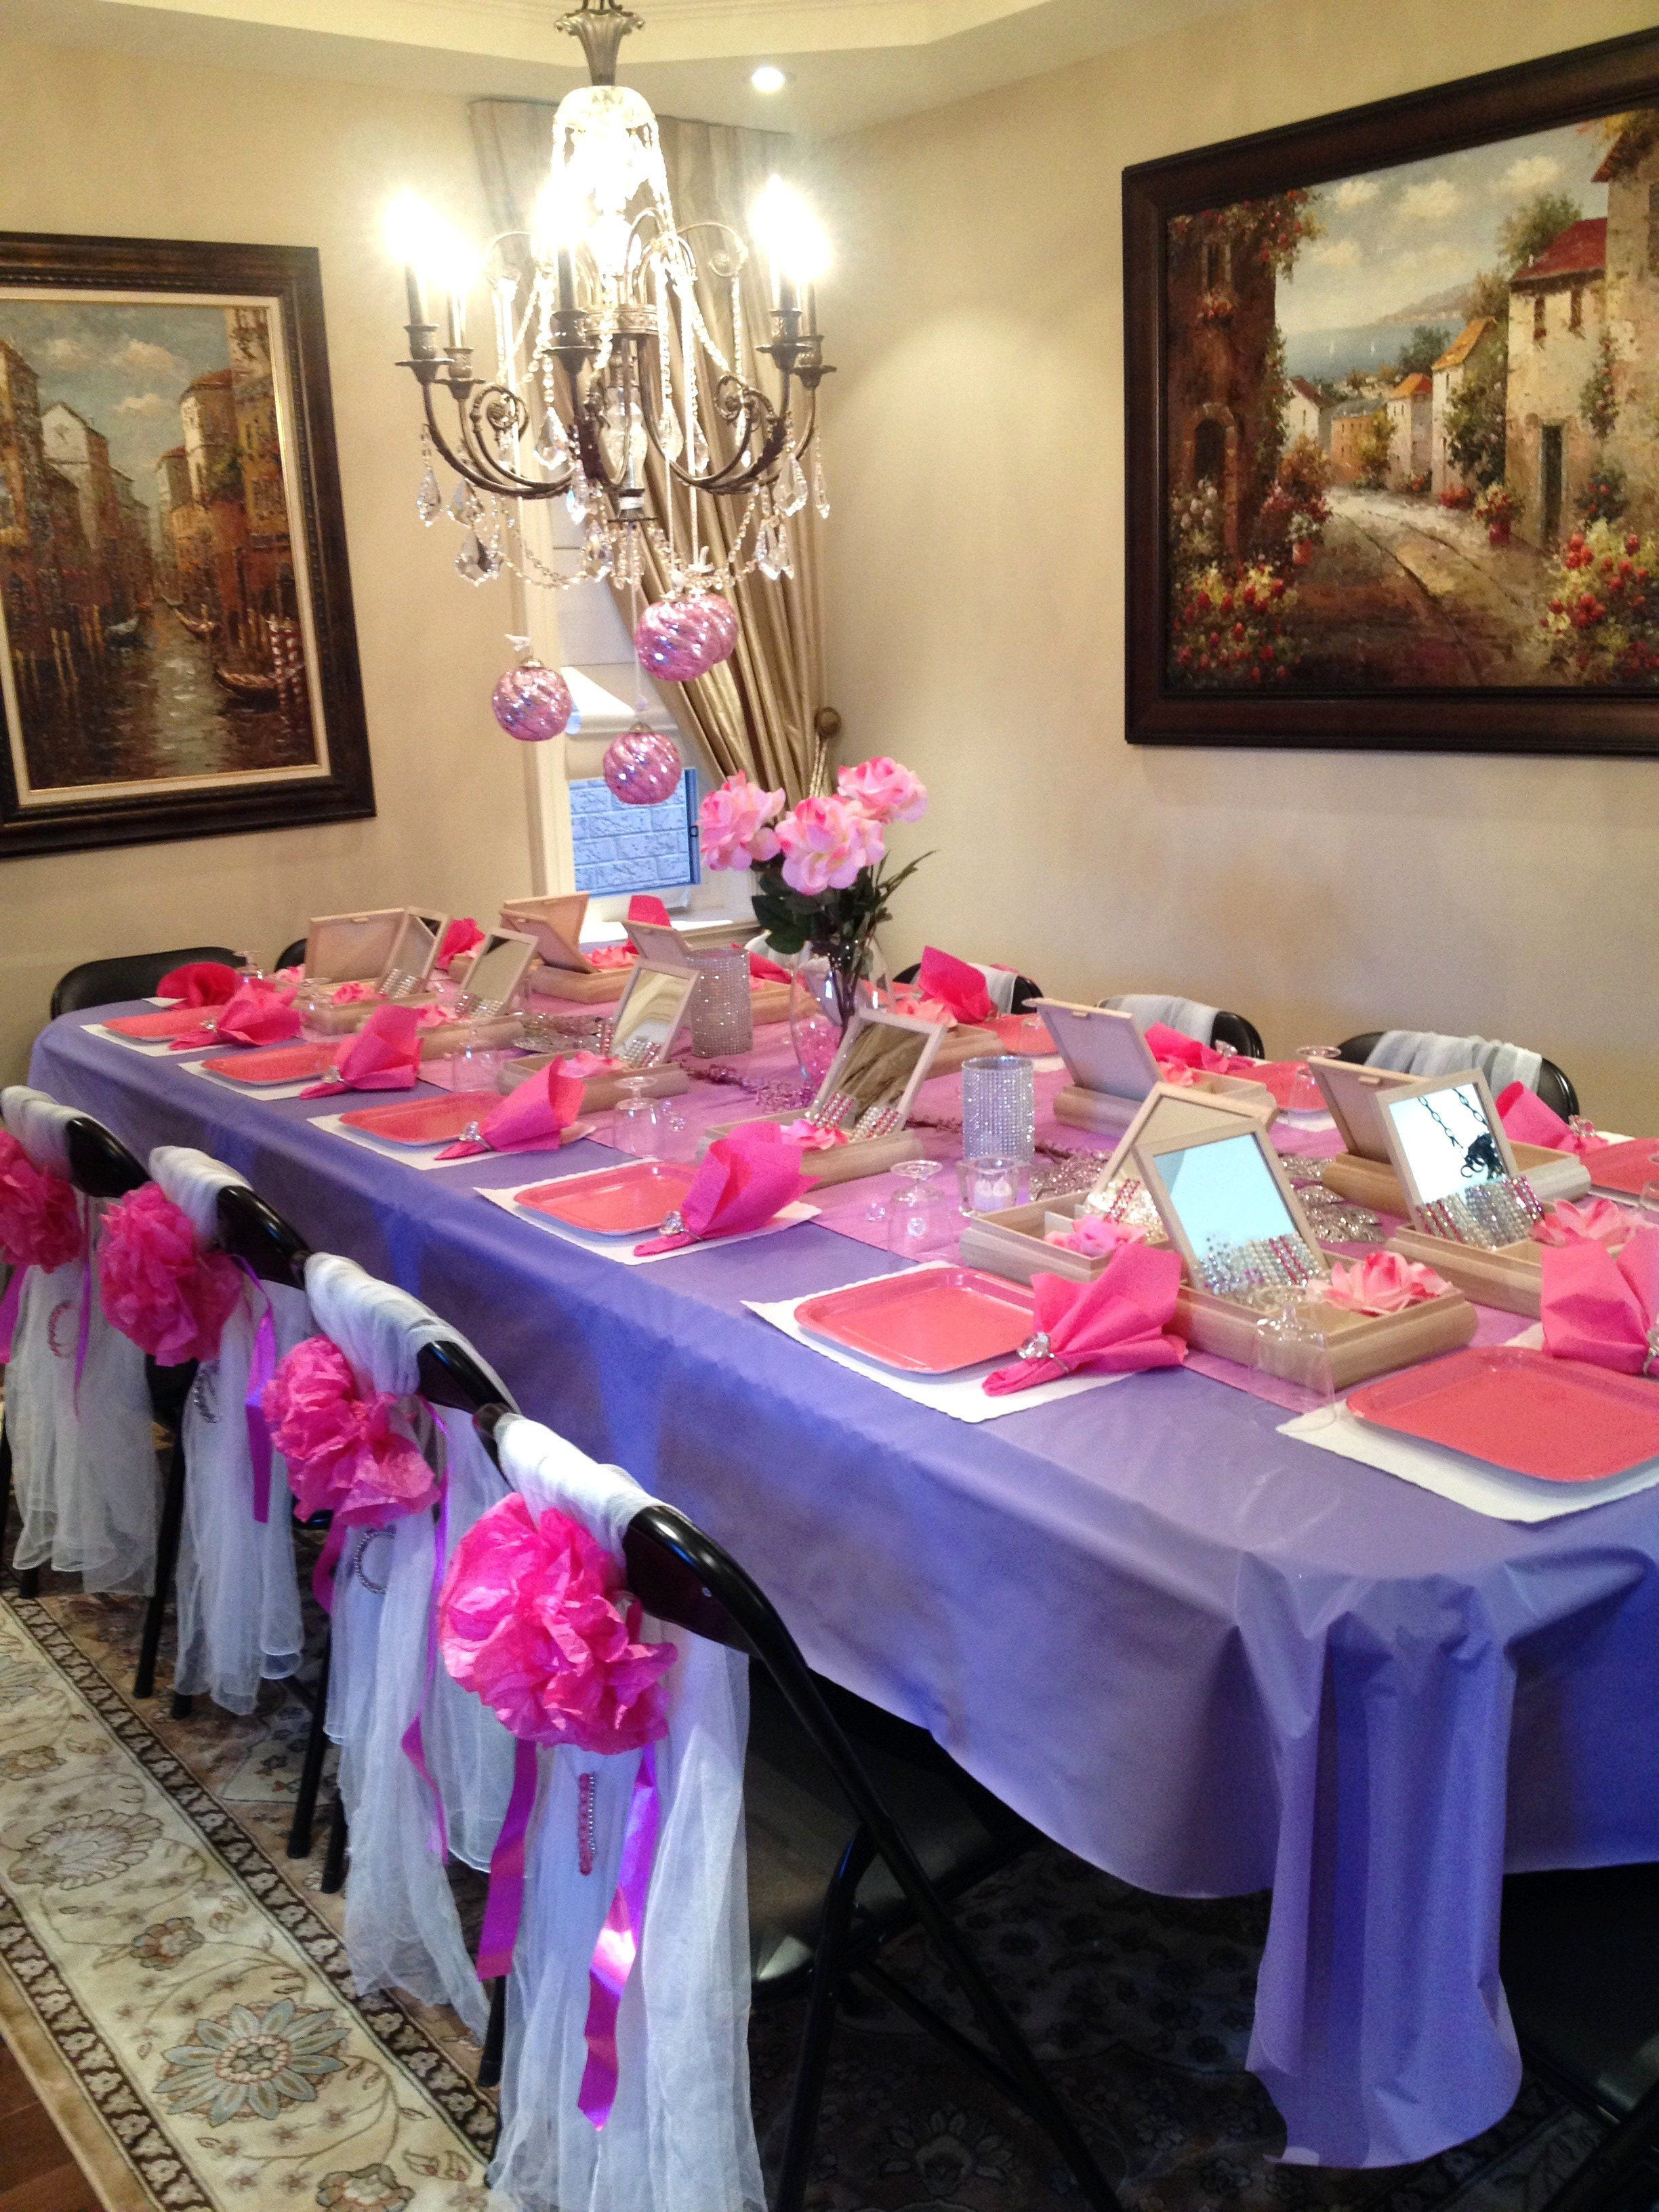 this momma went all out! she created a beautiful table display to go